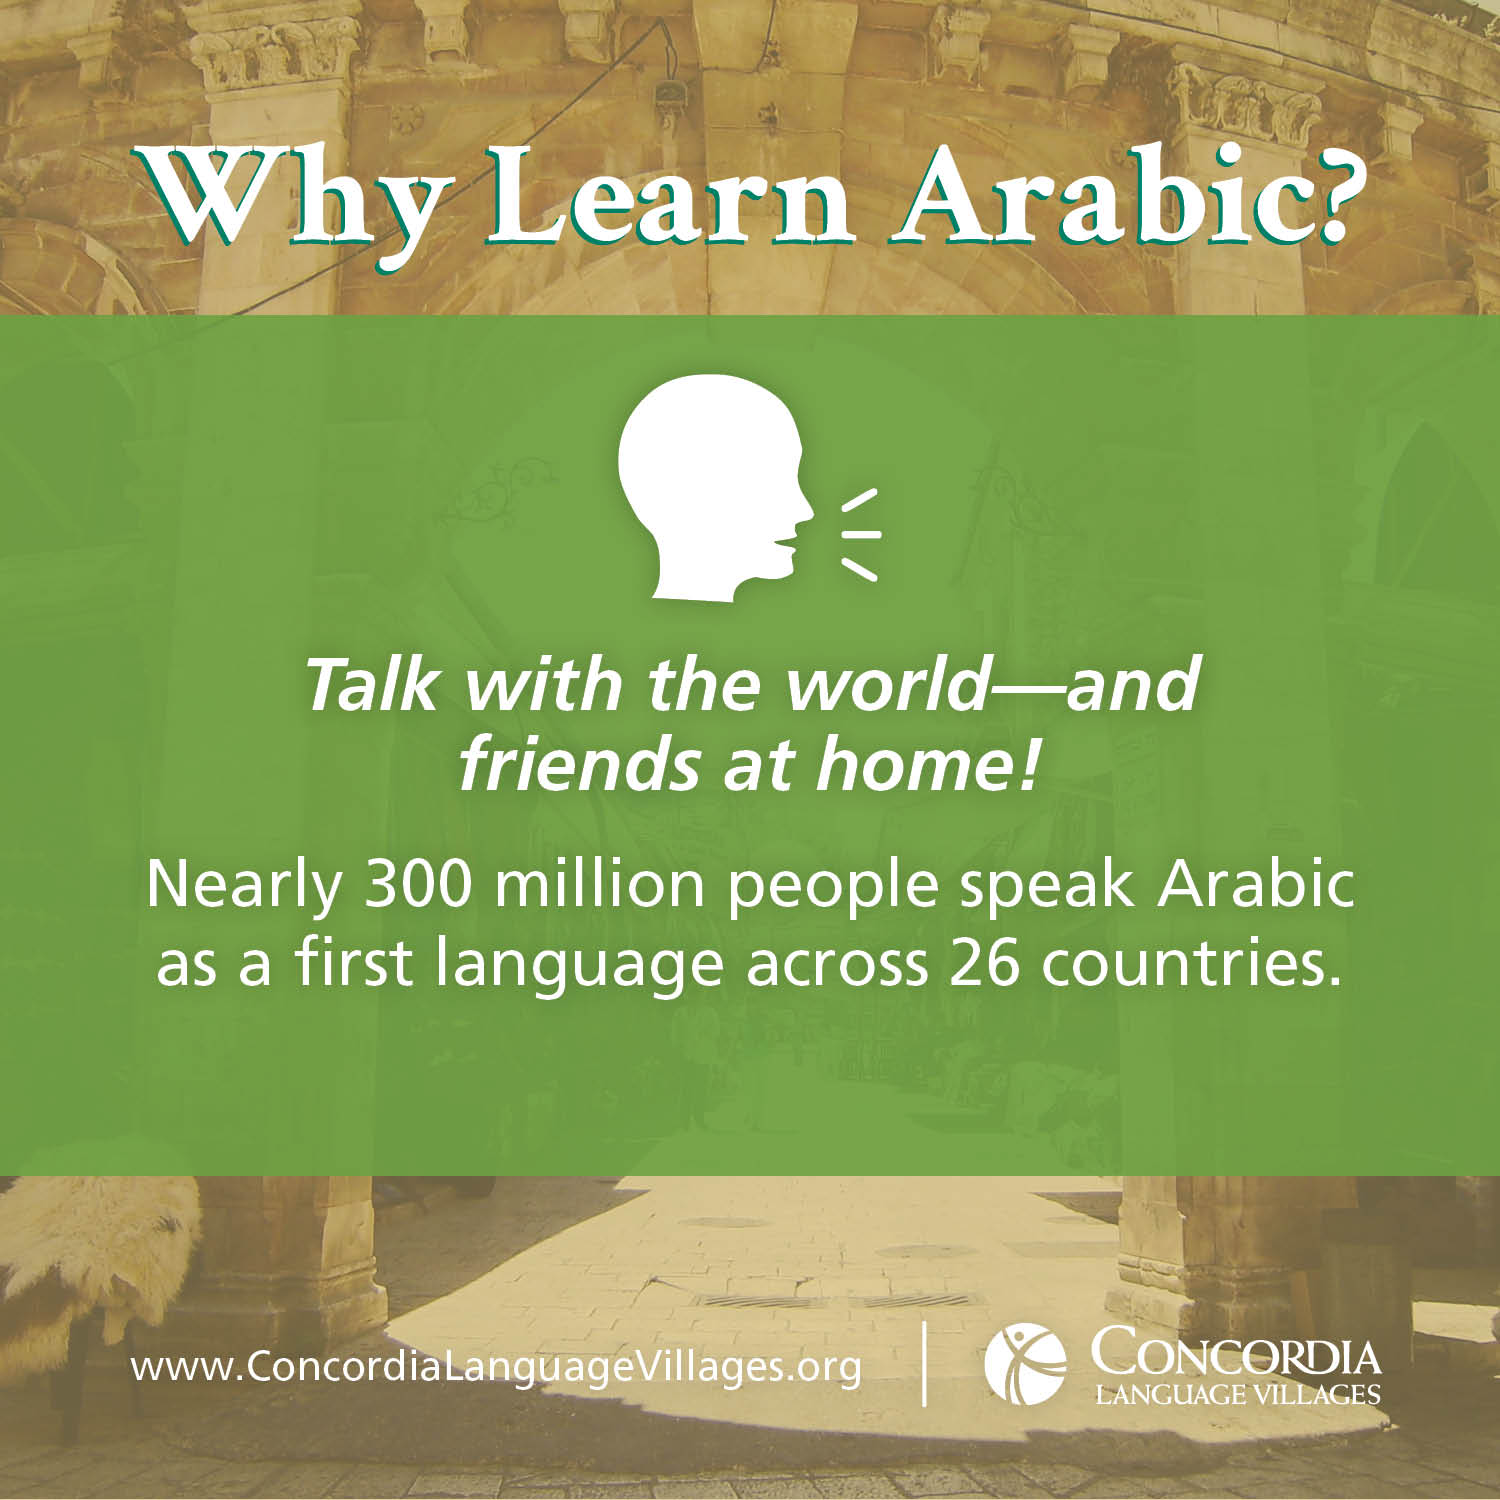 Why learn Arabic? Talk with the world--and friends at home! Nearly 300 million people speak Arabic as a first language across 26 countries.